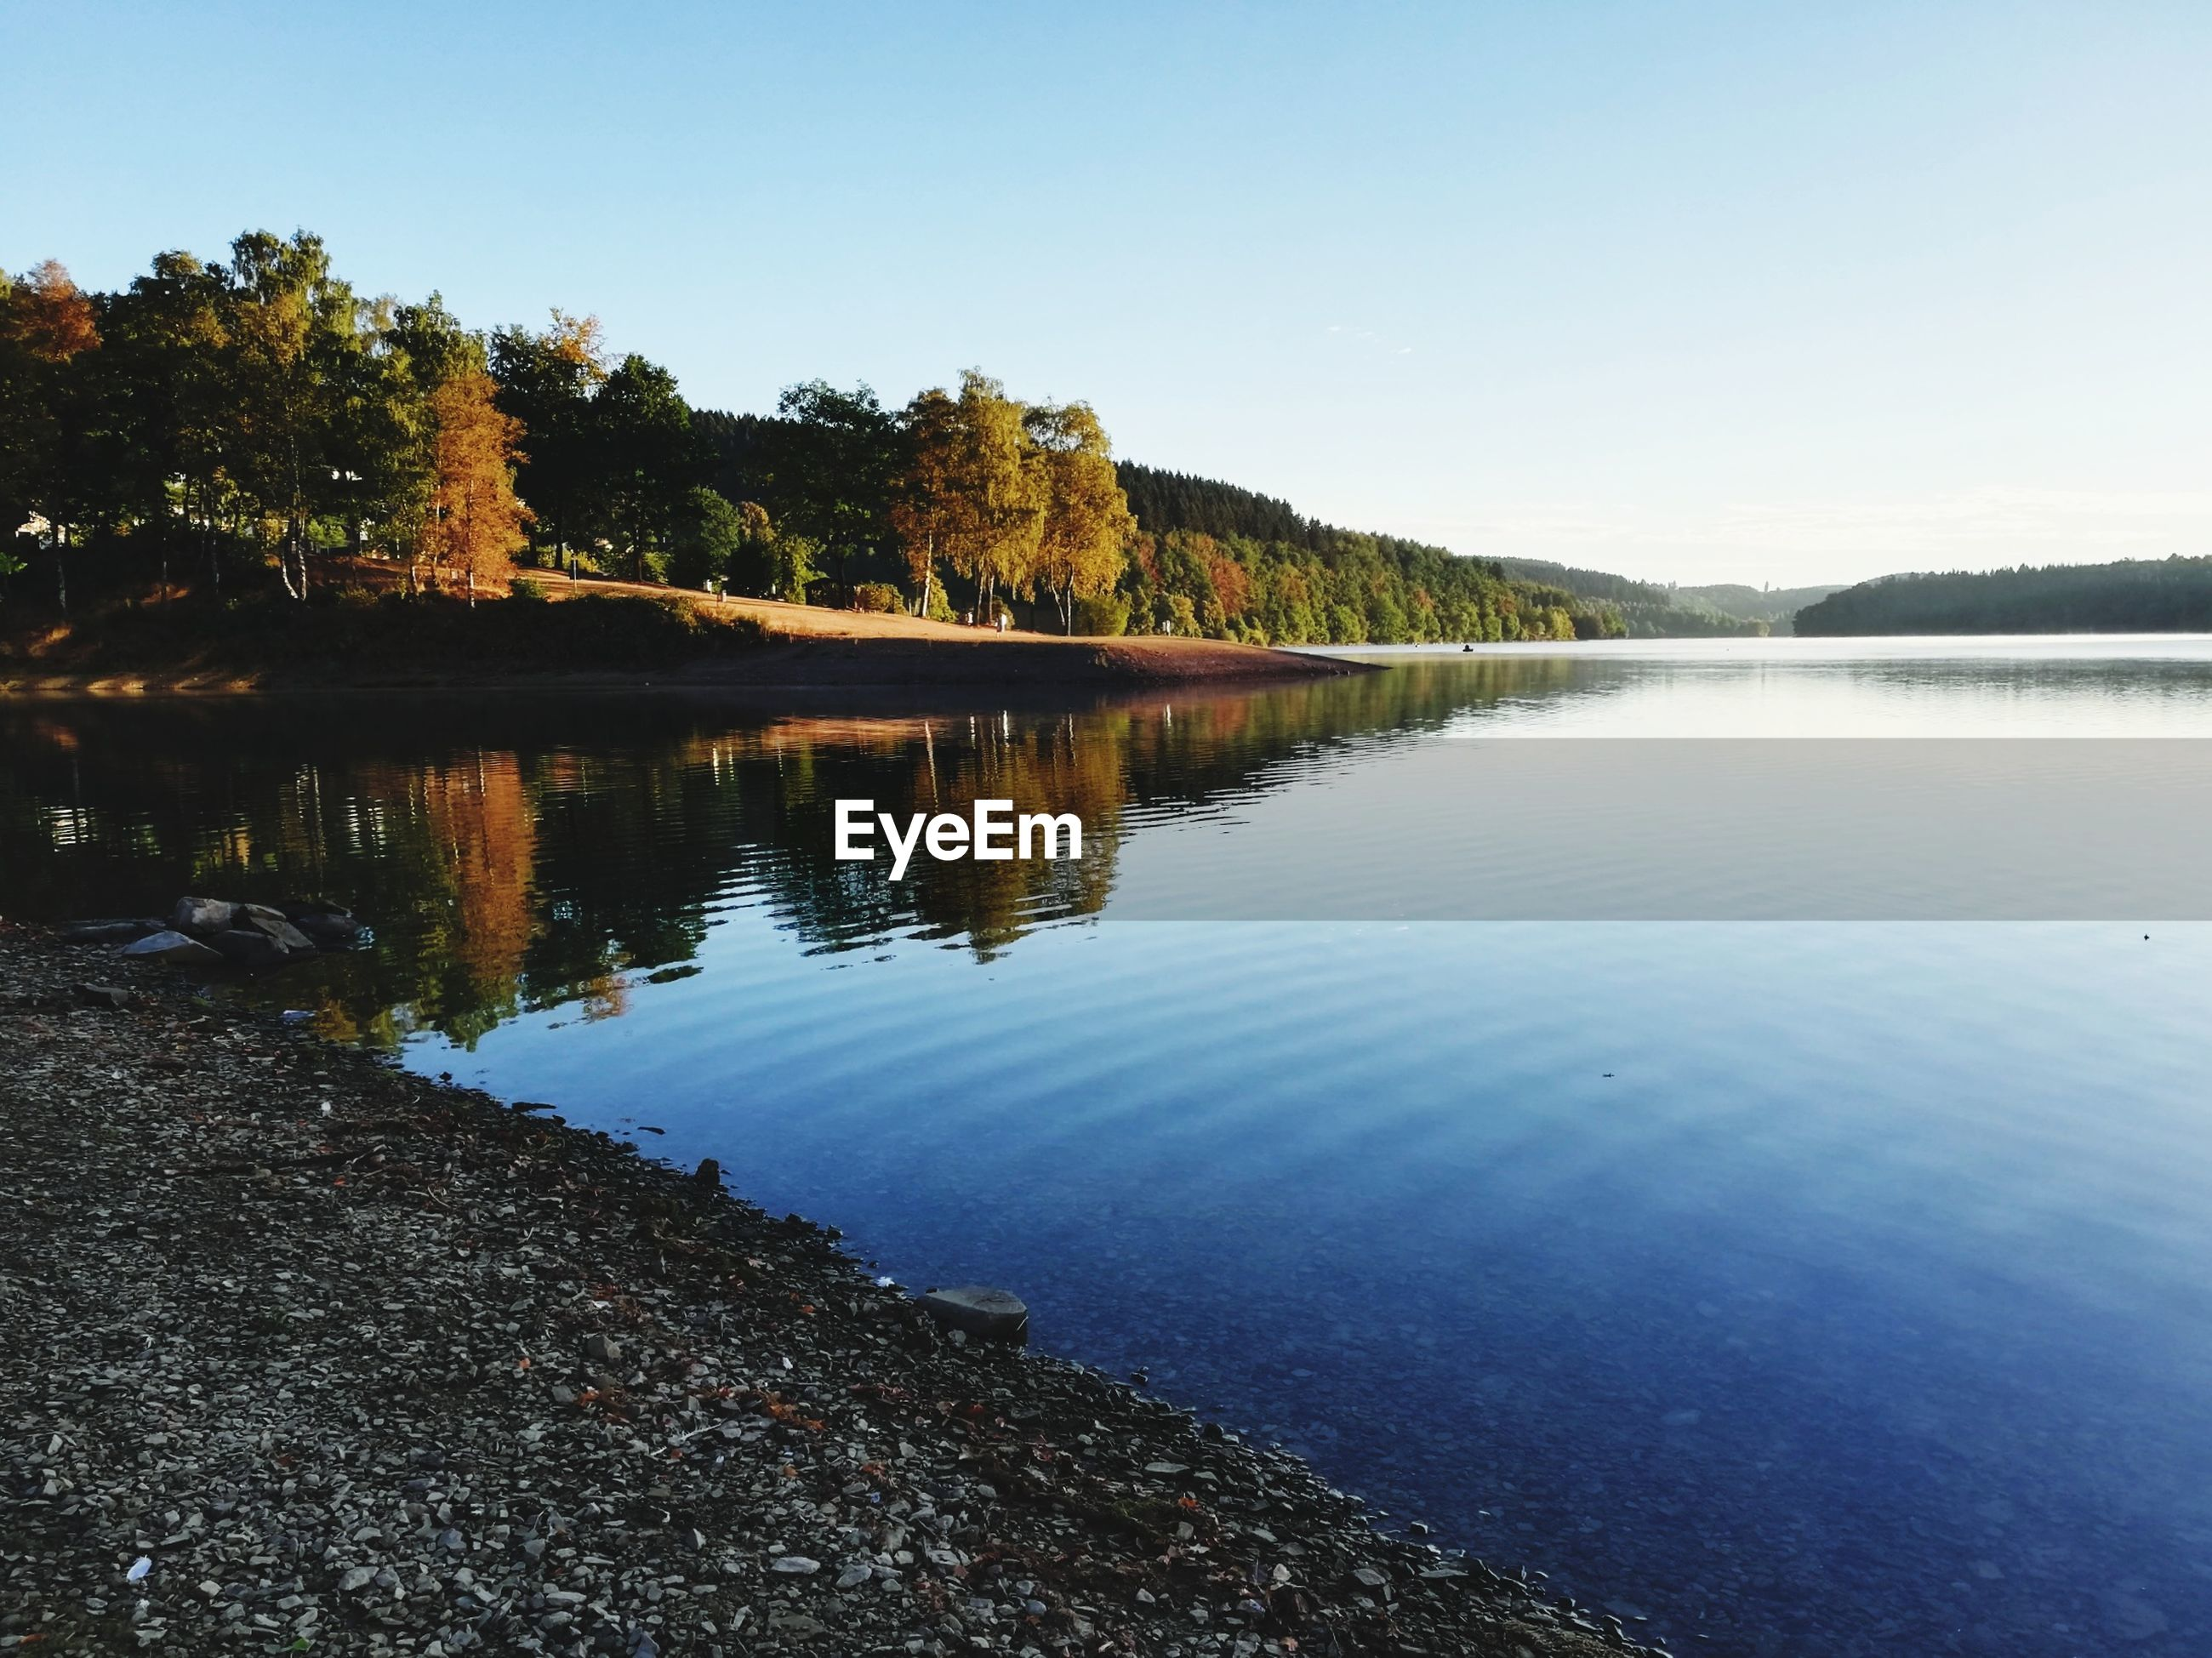 SCENIC VIEW OF LAKE BY TREES AGAINST CLEAR SKY